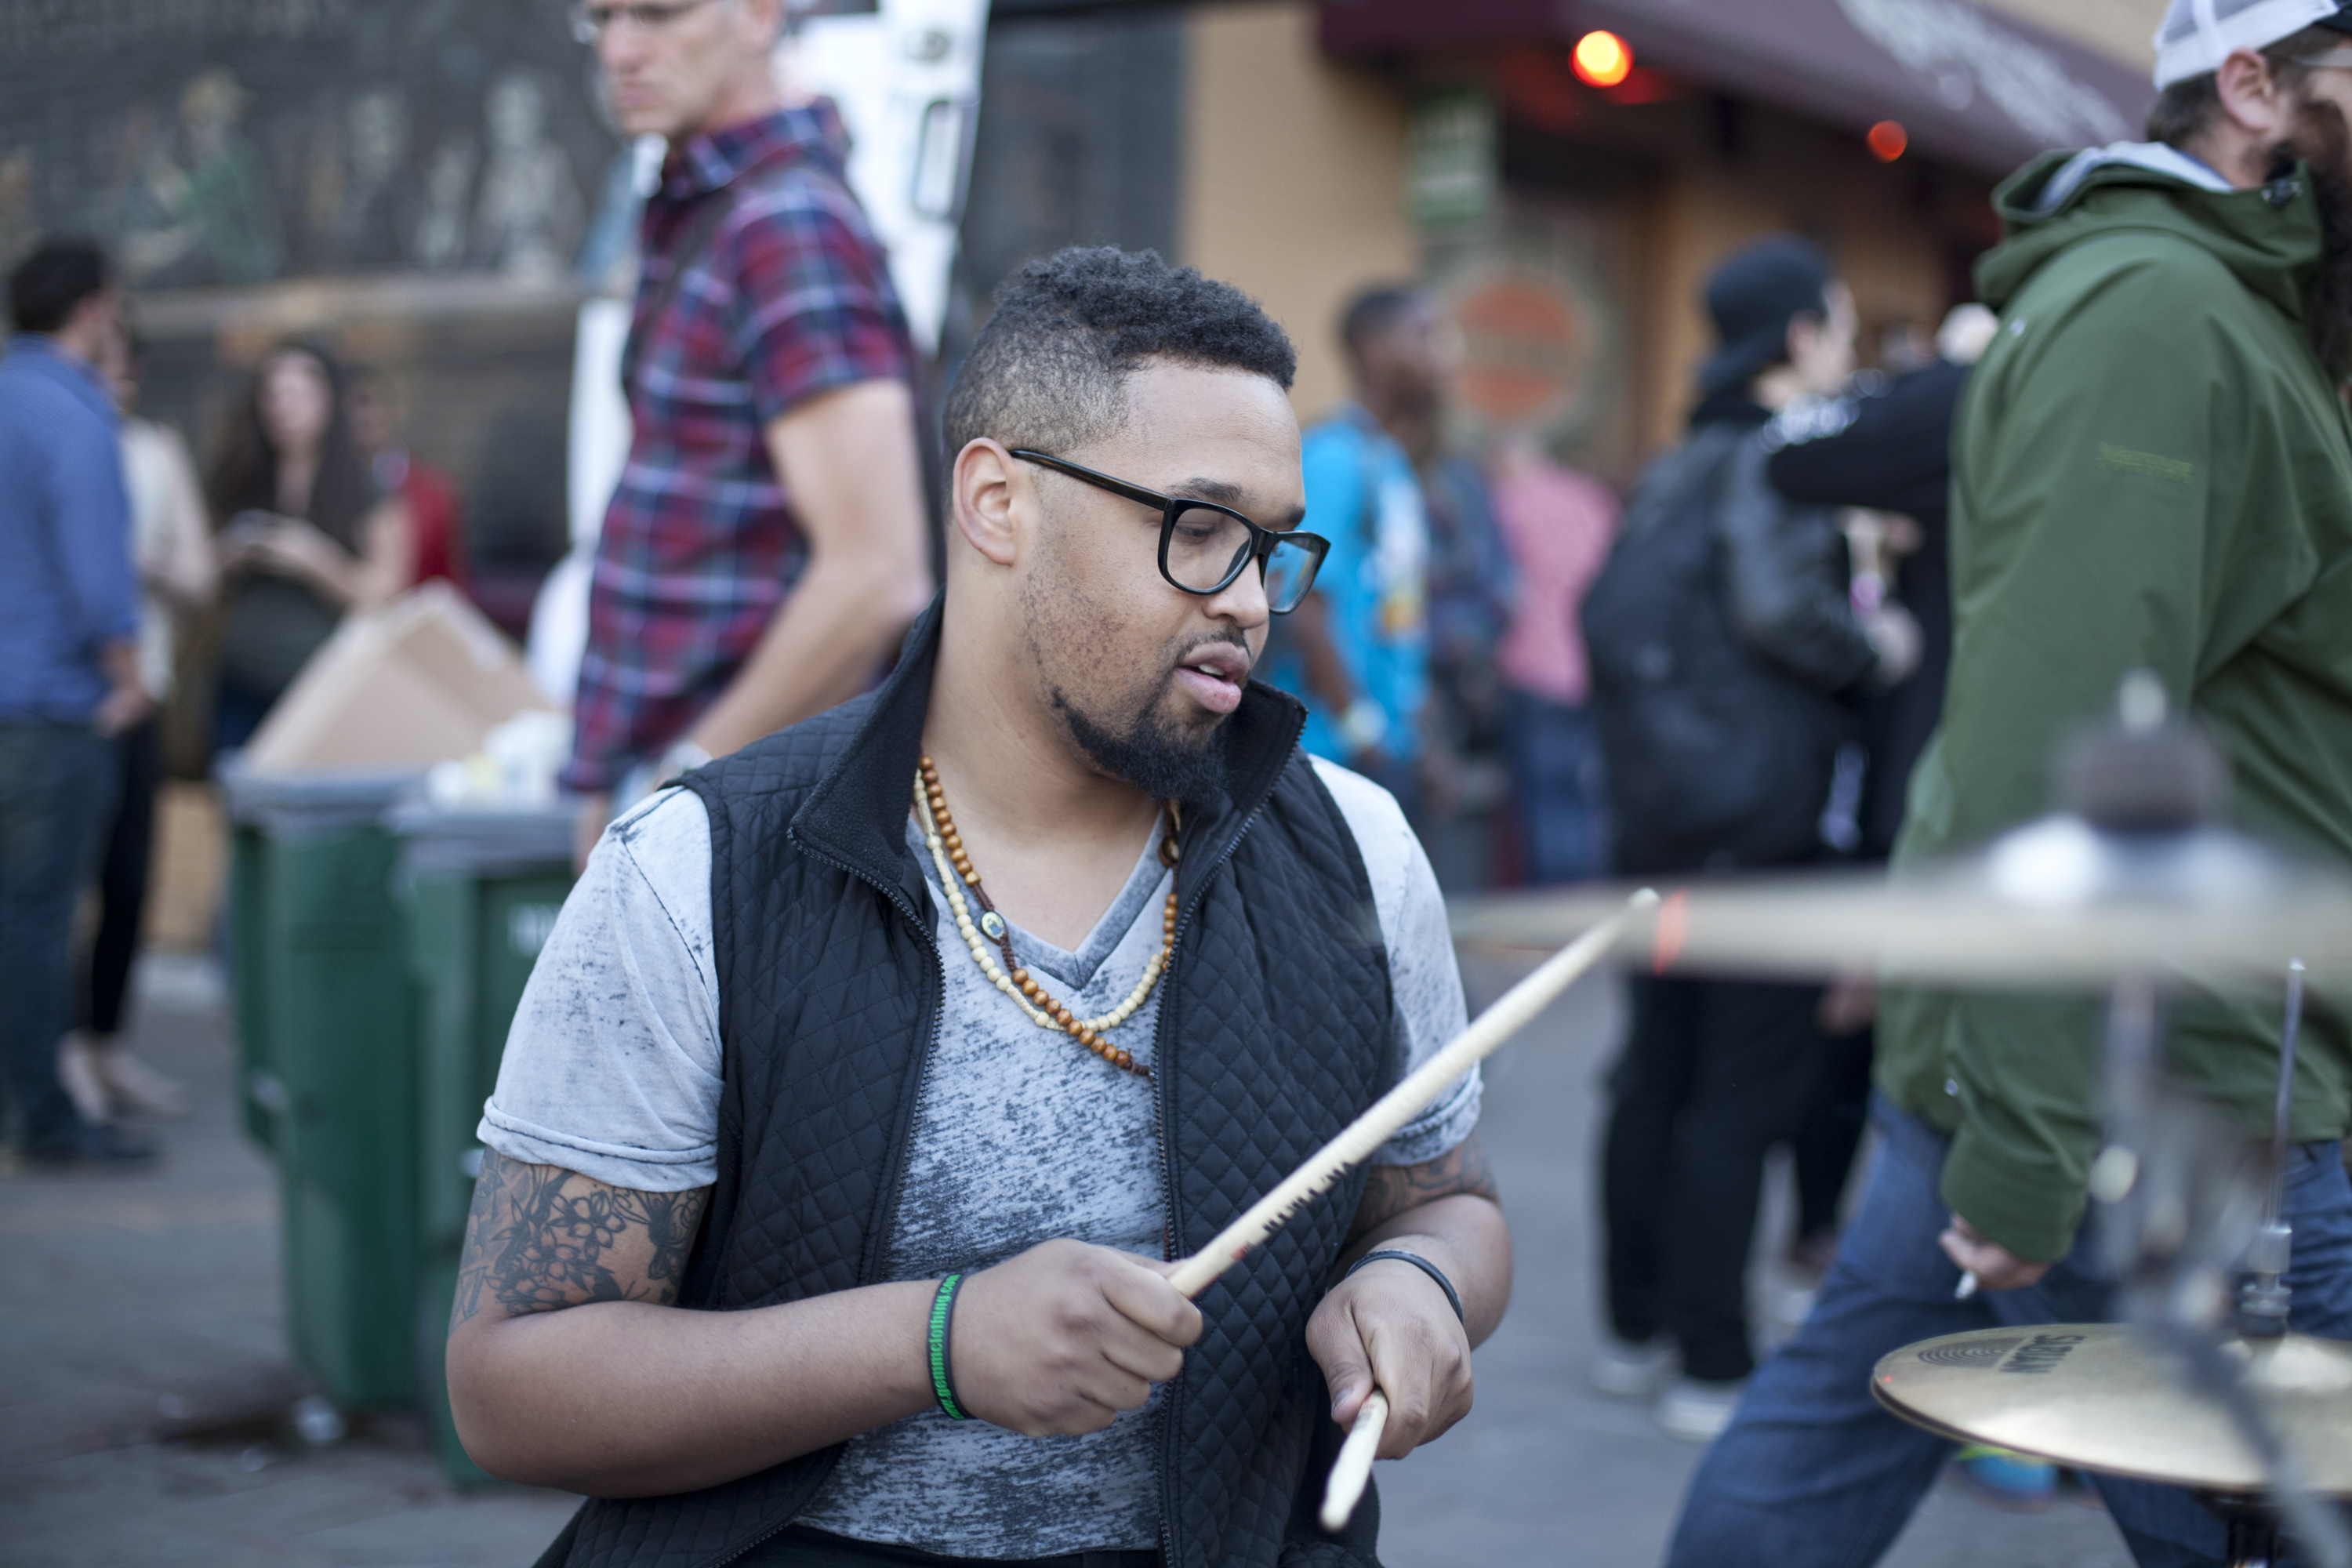 Drums on the street in Austin during SXSW 2014